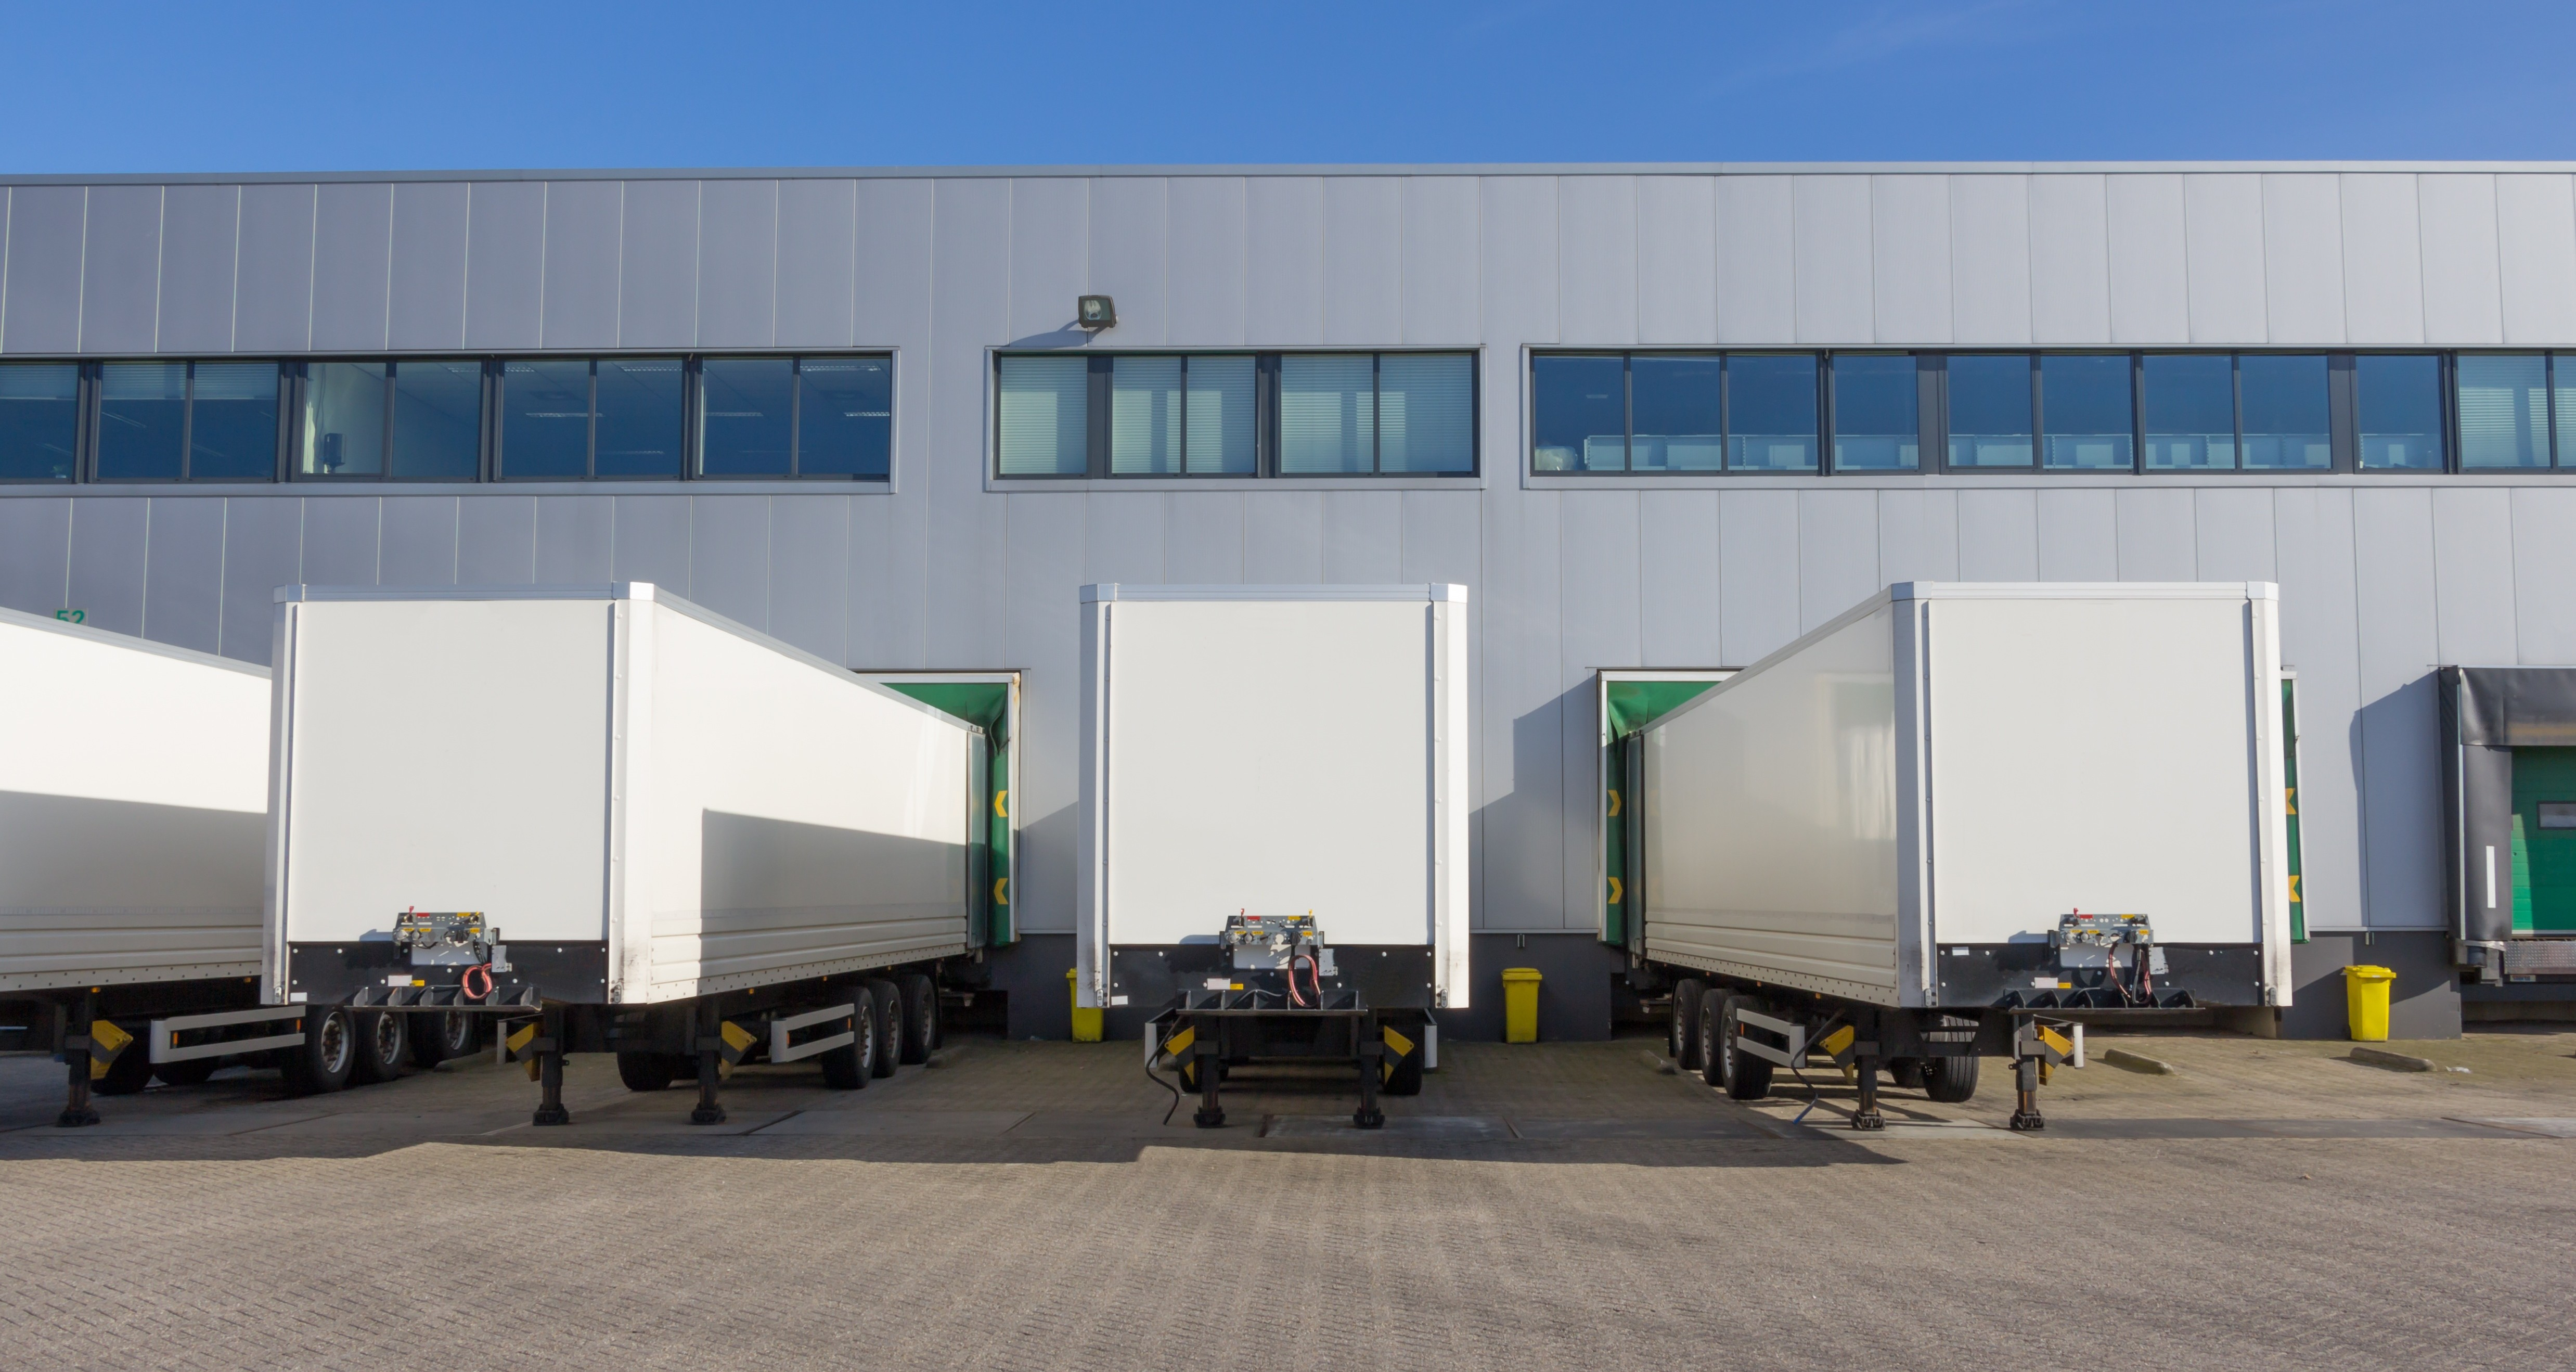 Trailers at docking stations of a distribution centre waiting to